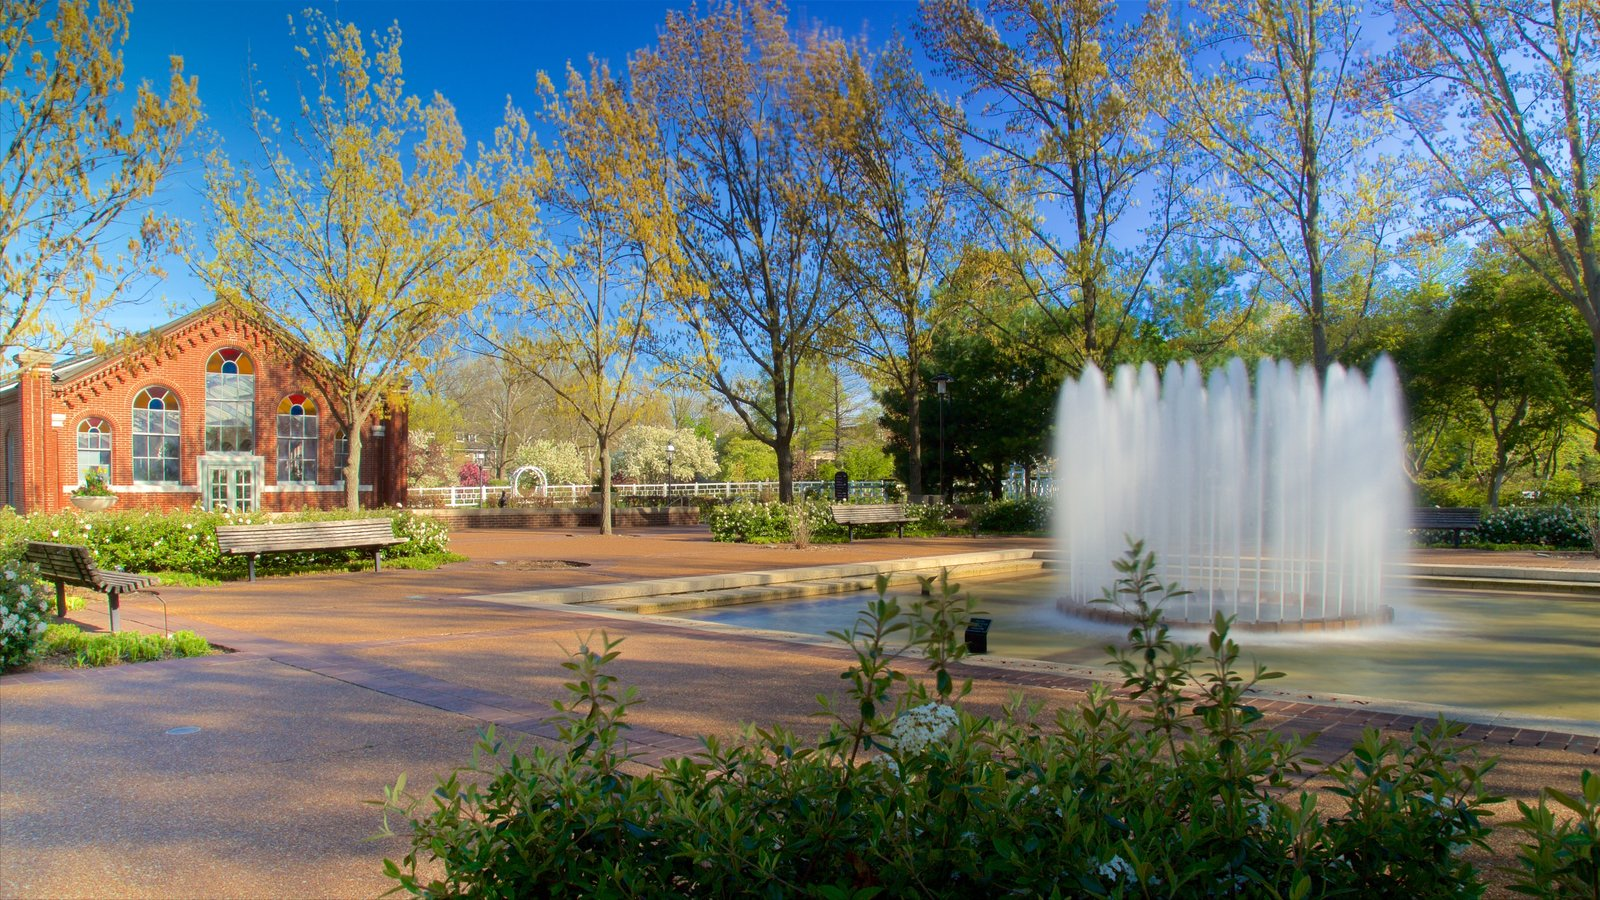 Missouri Botanical Gardens and Arboretum featuring a park and a fountain